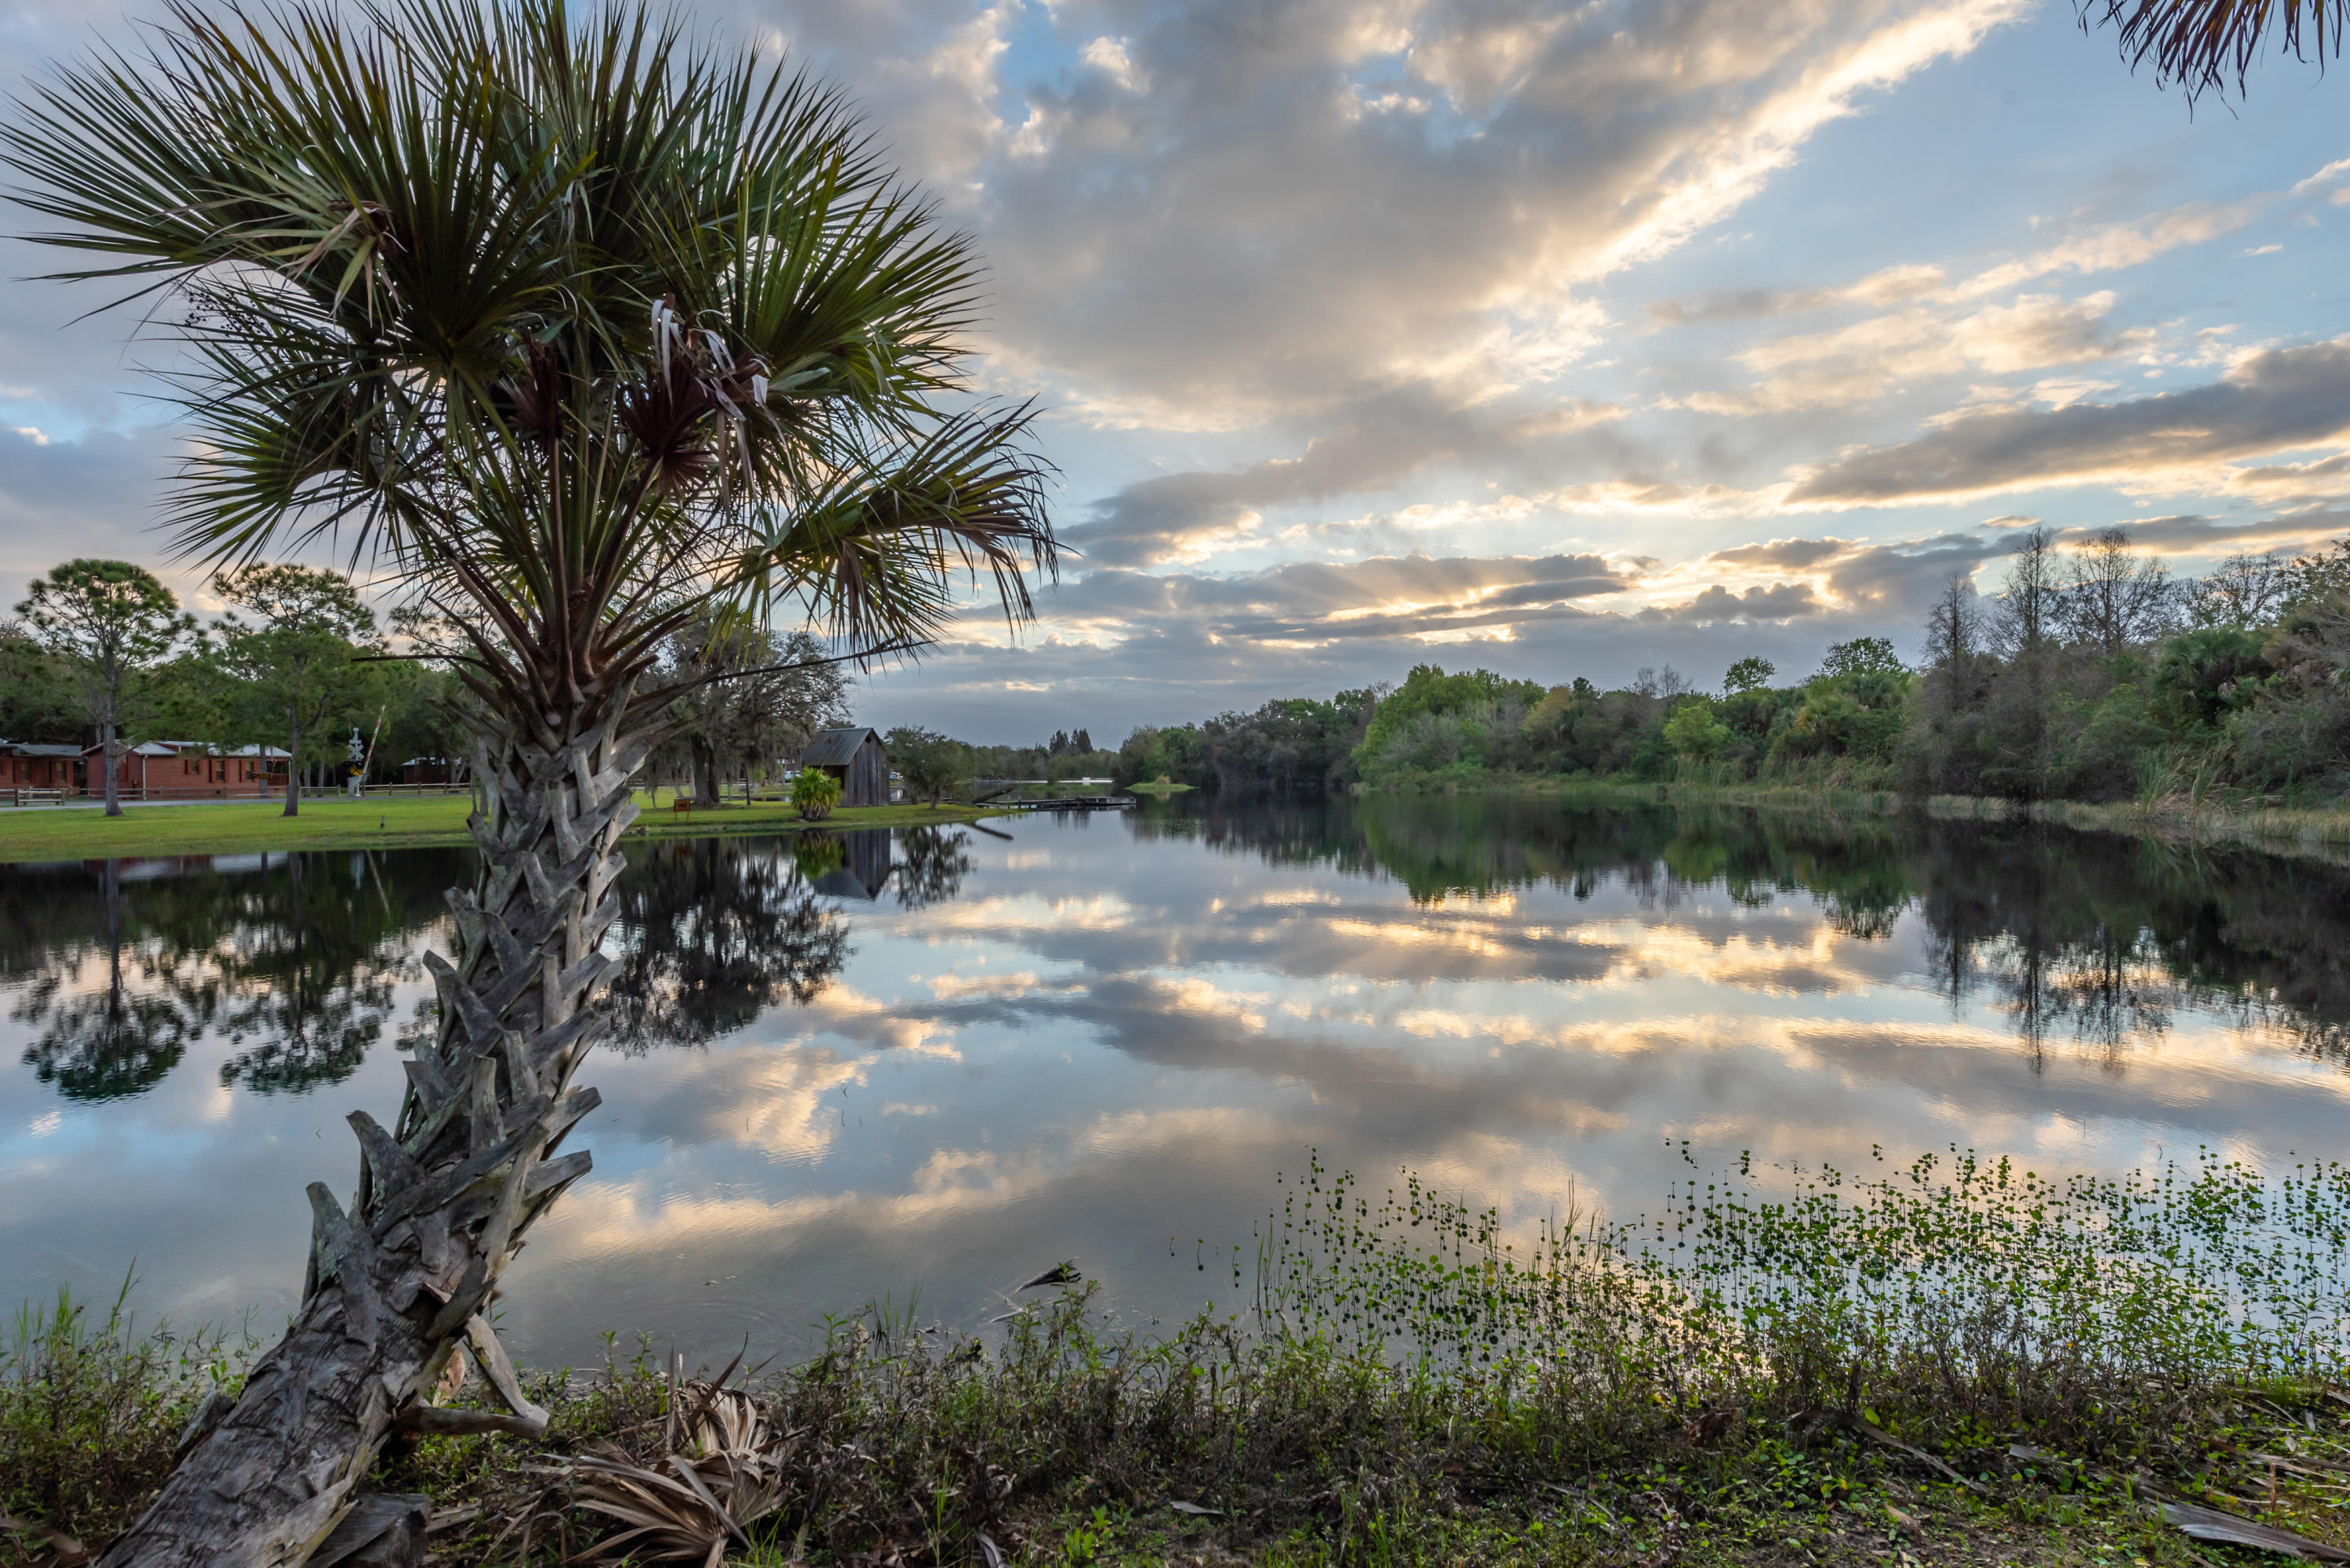 12399 224th Street, Okeechobee, Florida 34972, ,for Sale,224th,RX-10619978, , , ,for Sale